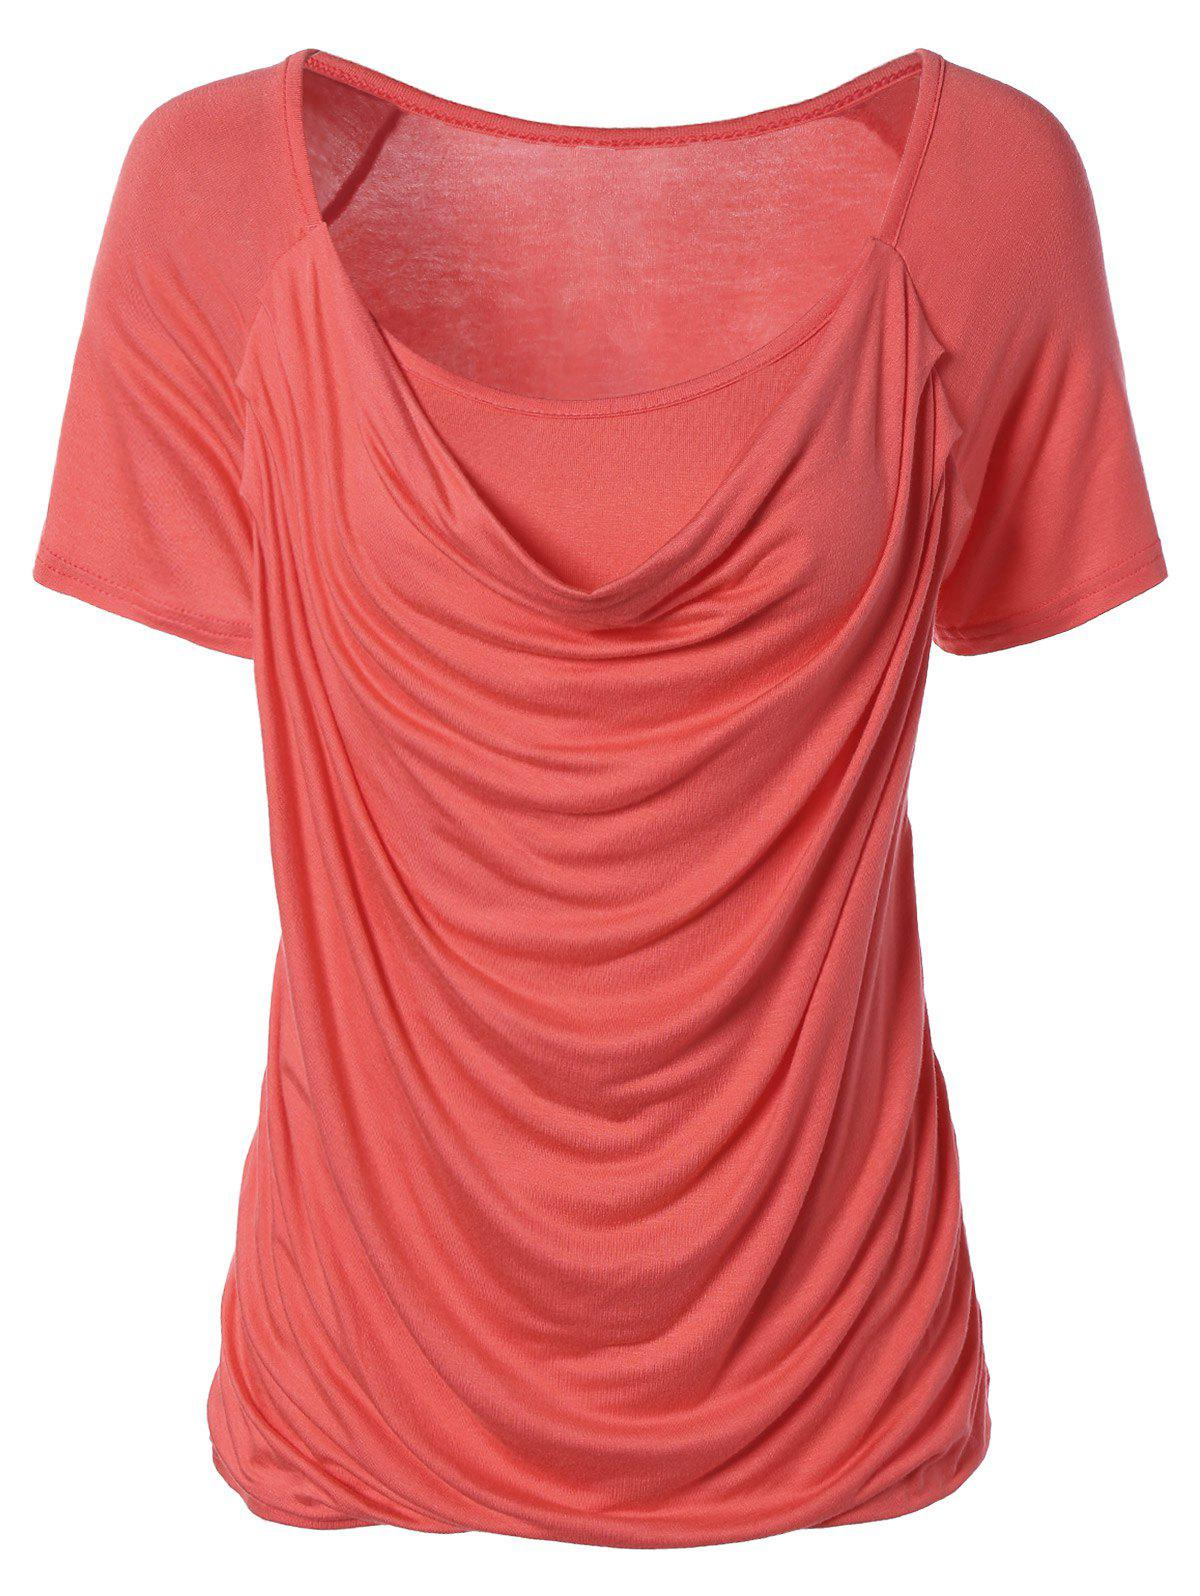 Stylish Pure Color Ruffled T-Shirt For Women - WATERMELON RED XL